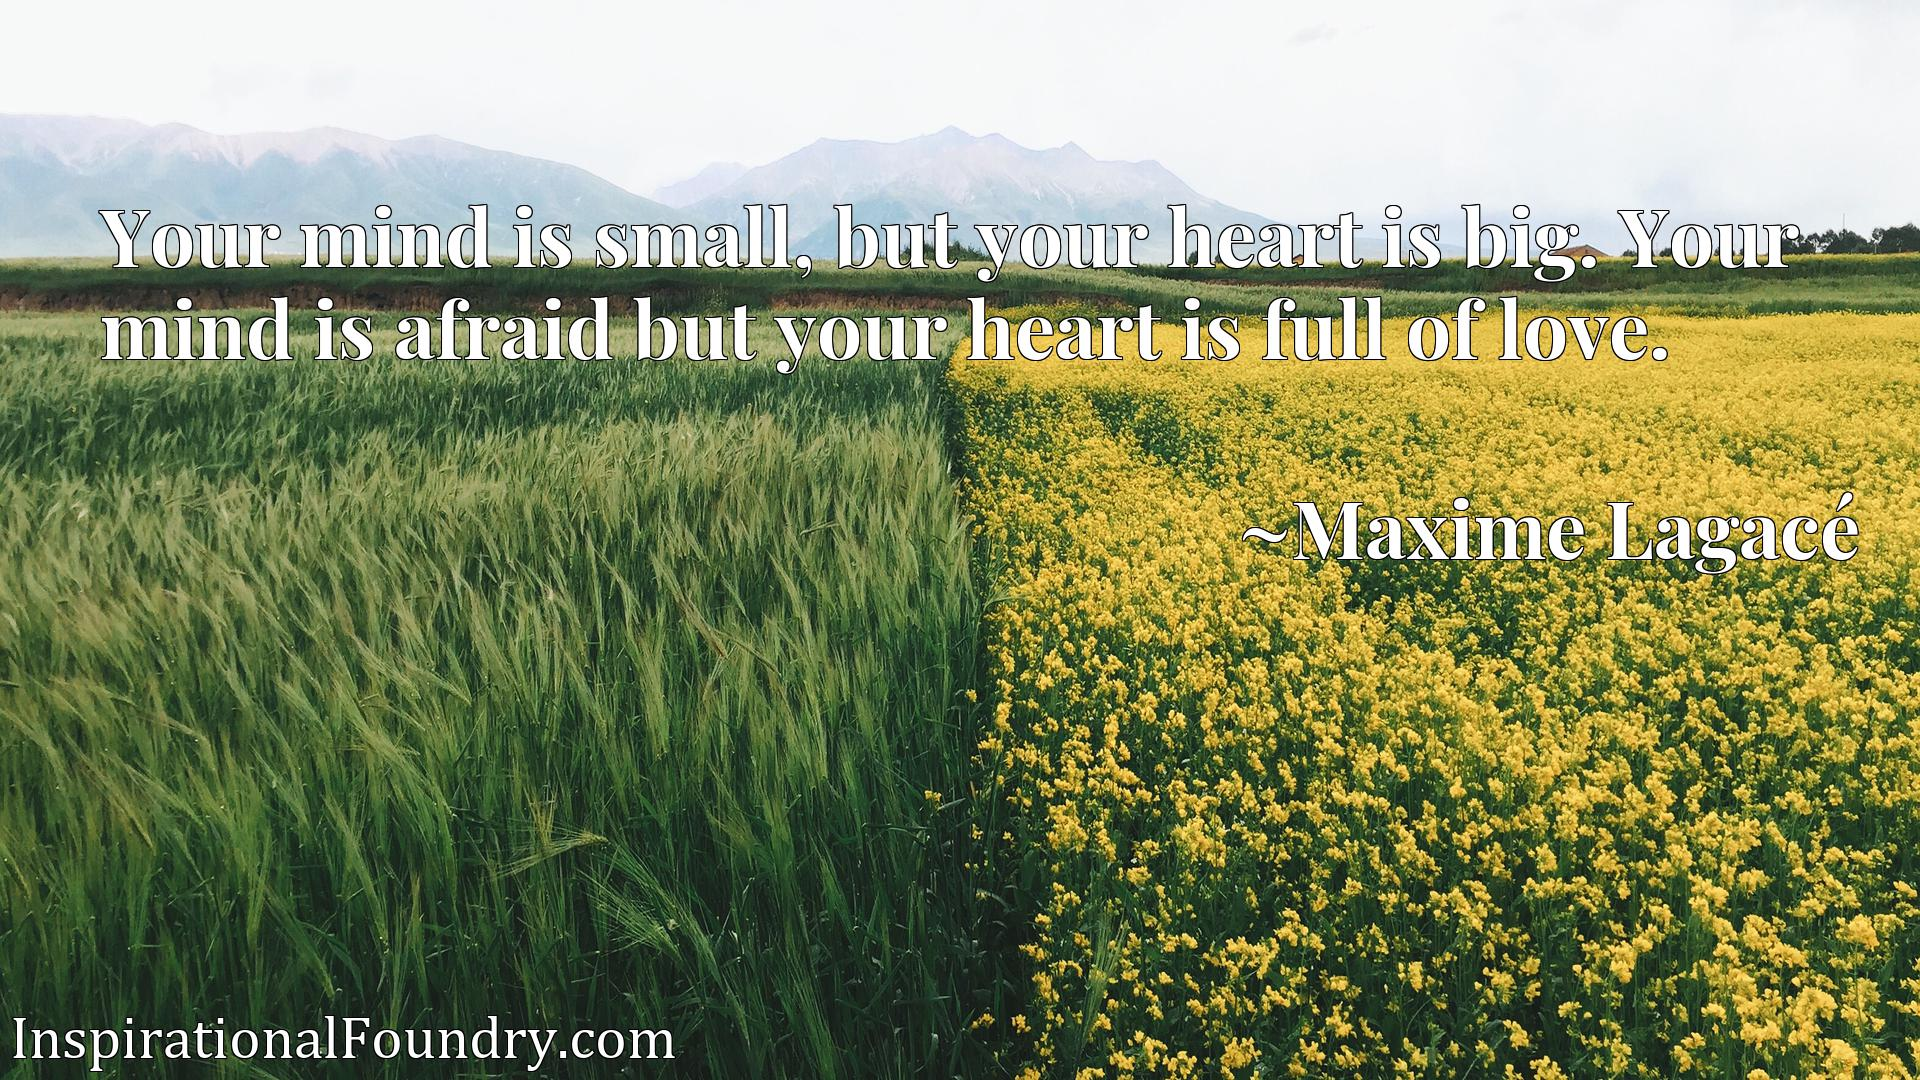 Your mind is small, but your heart is big. Your mind is afraid but your heart is full of love.